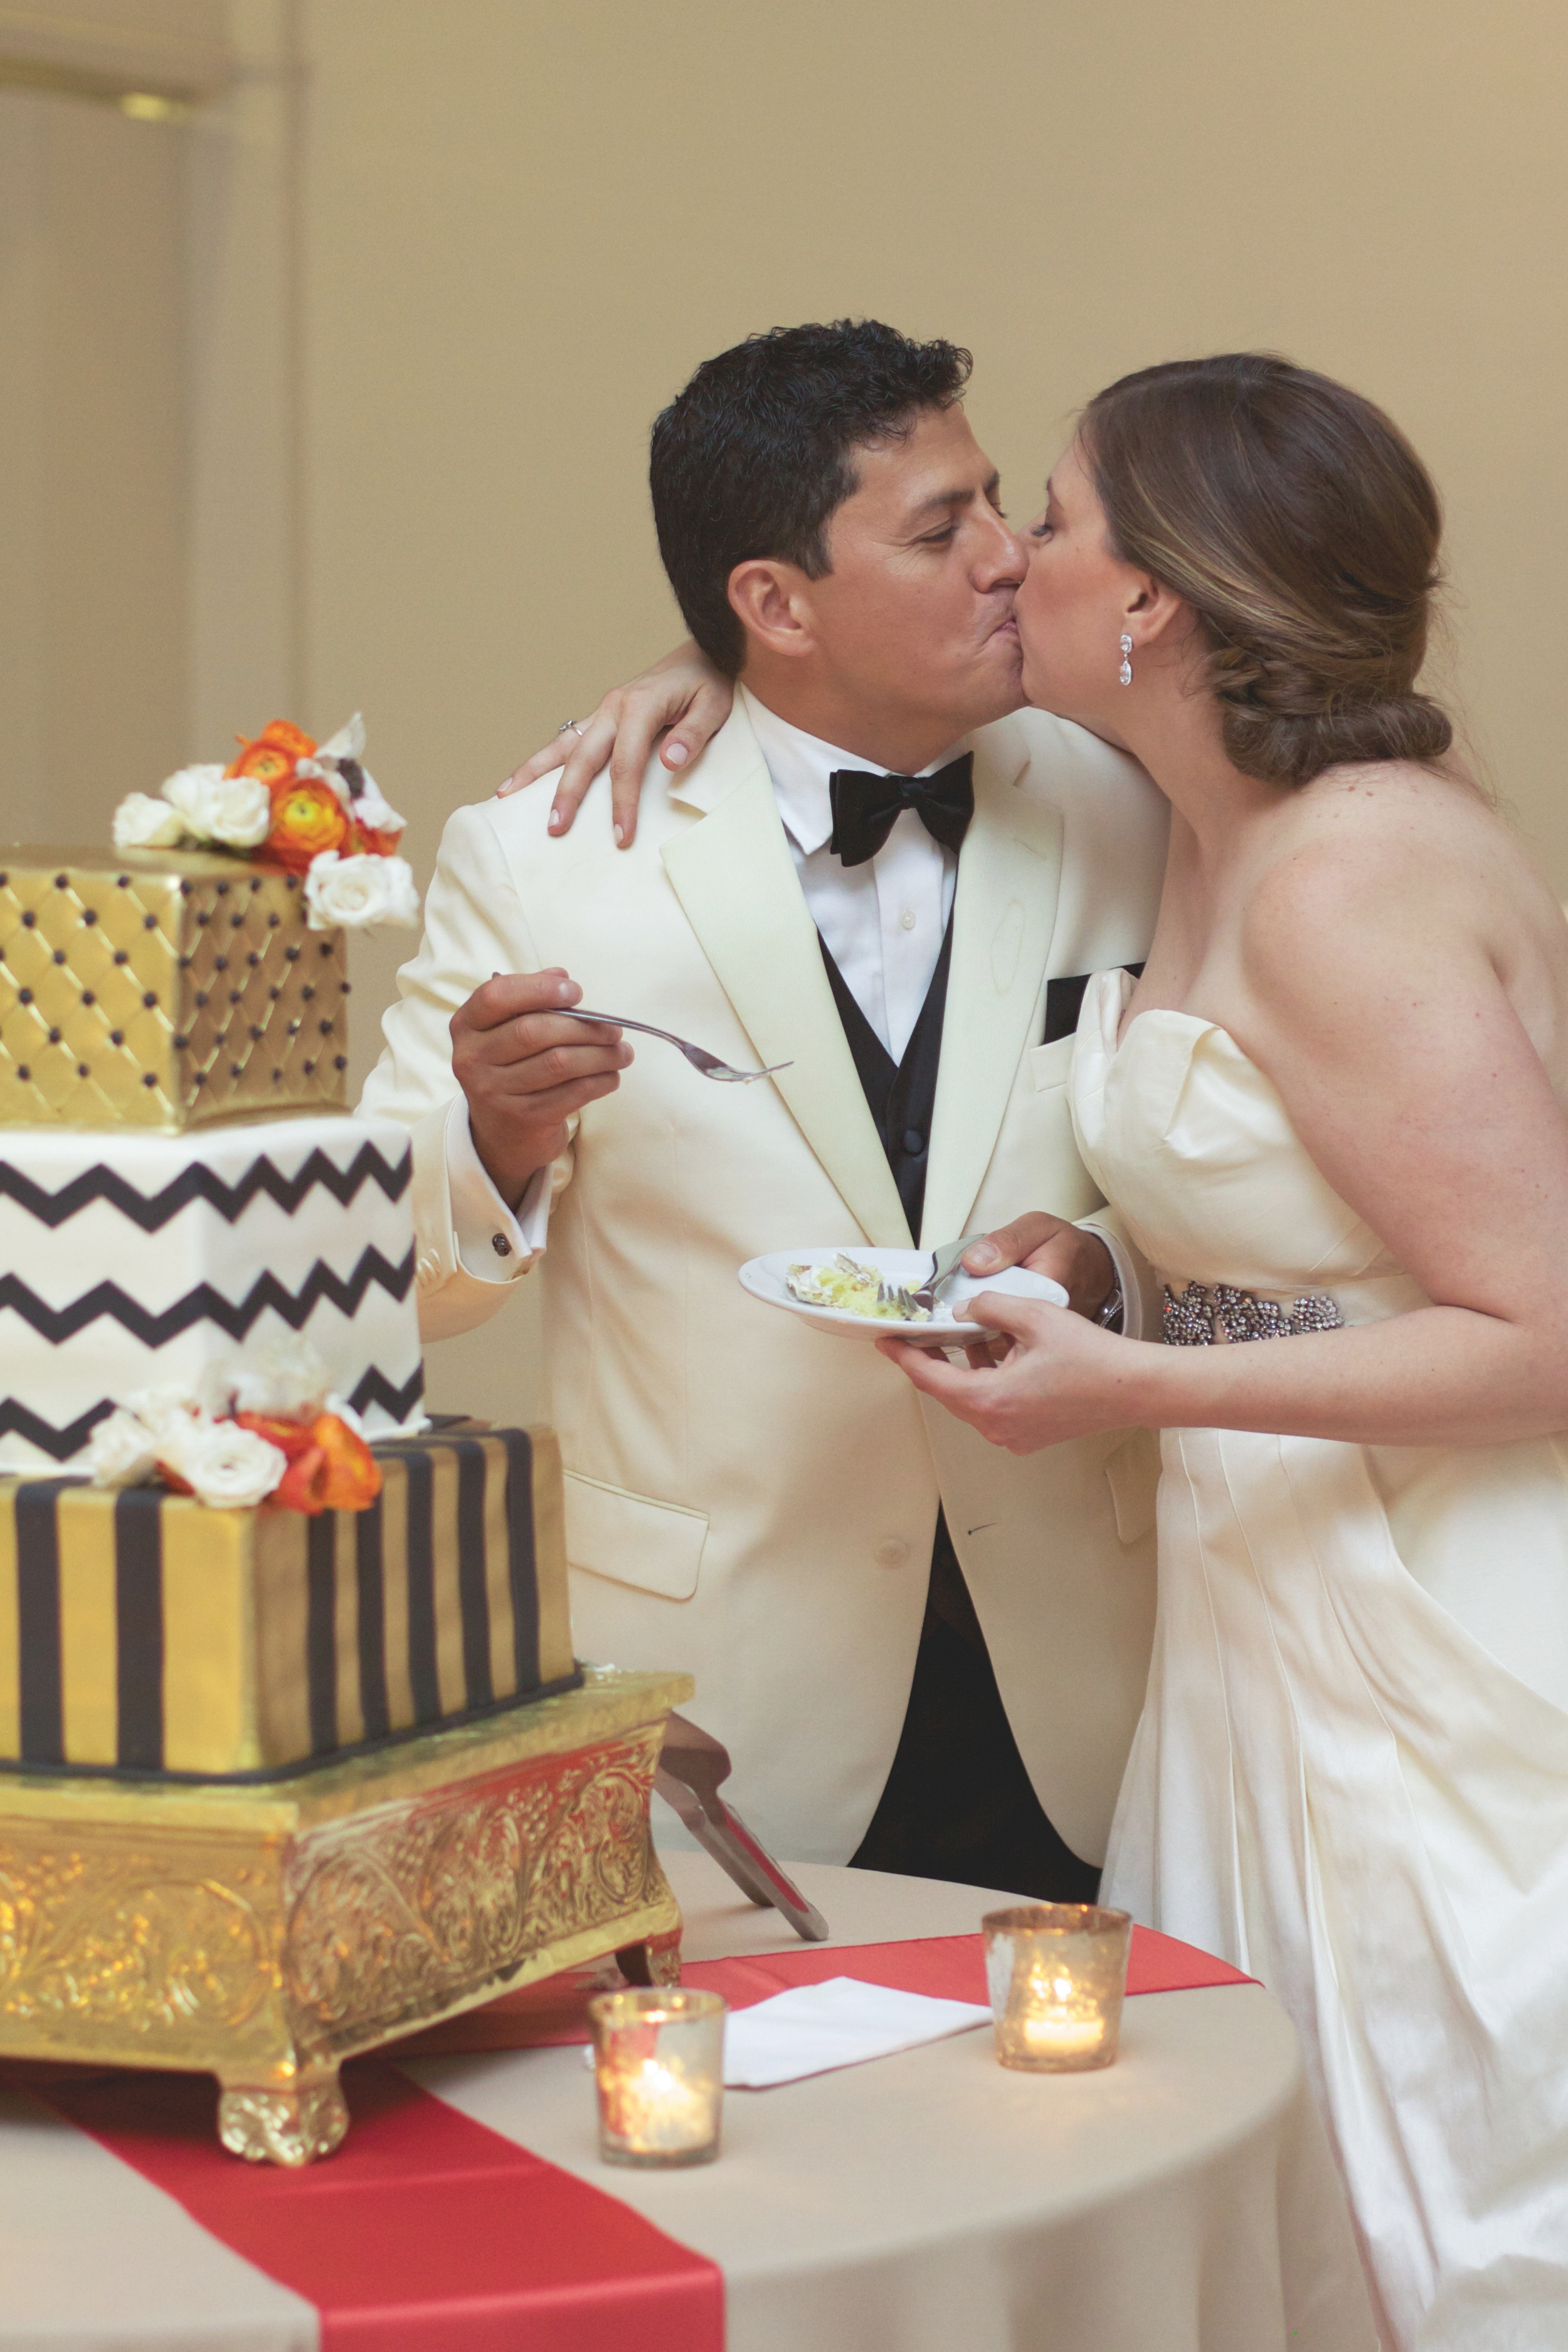 A sweet ending to a truly incredible wedding day!